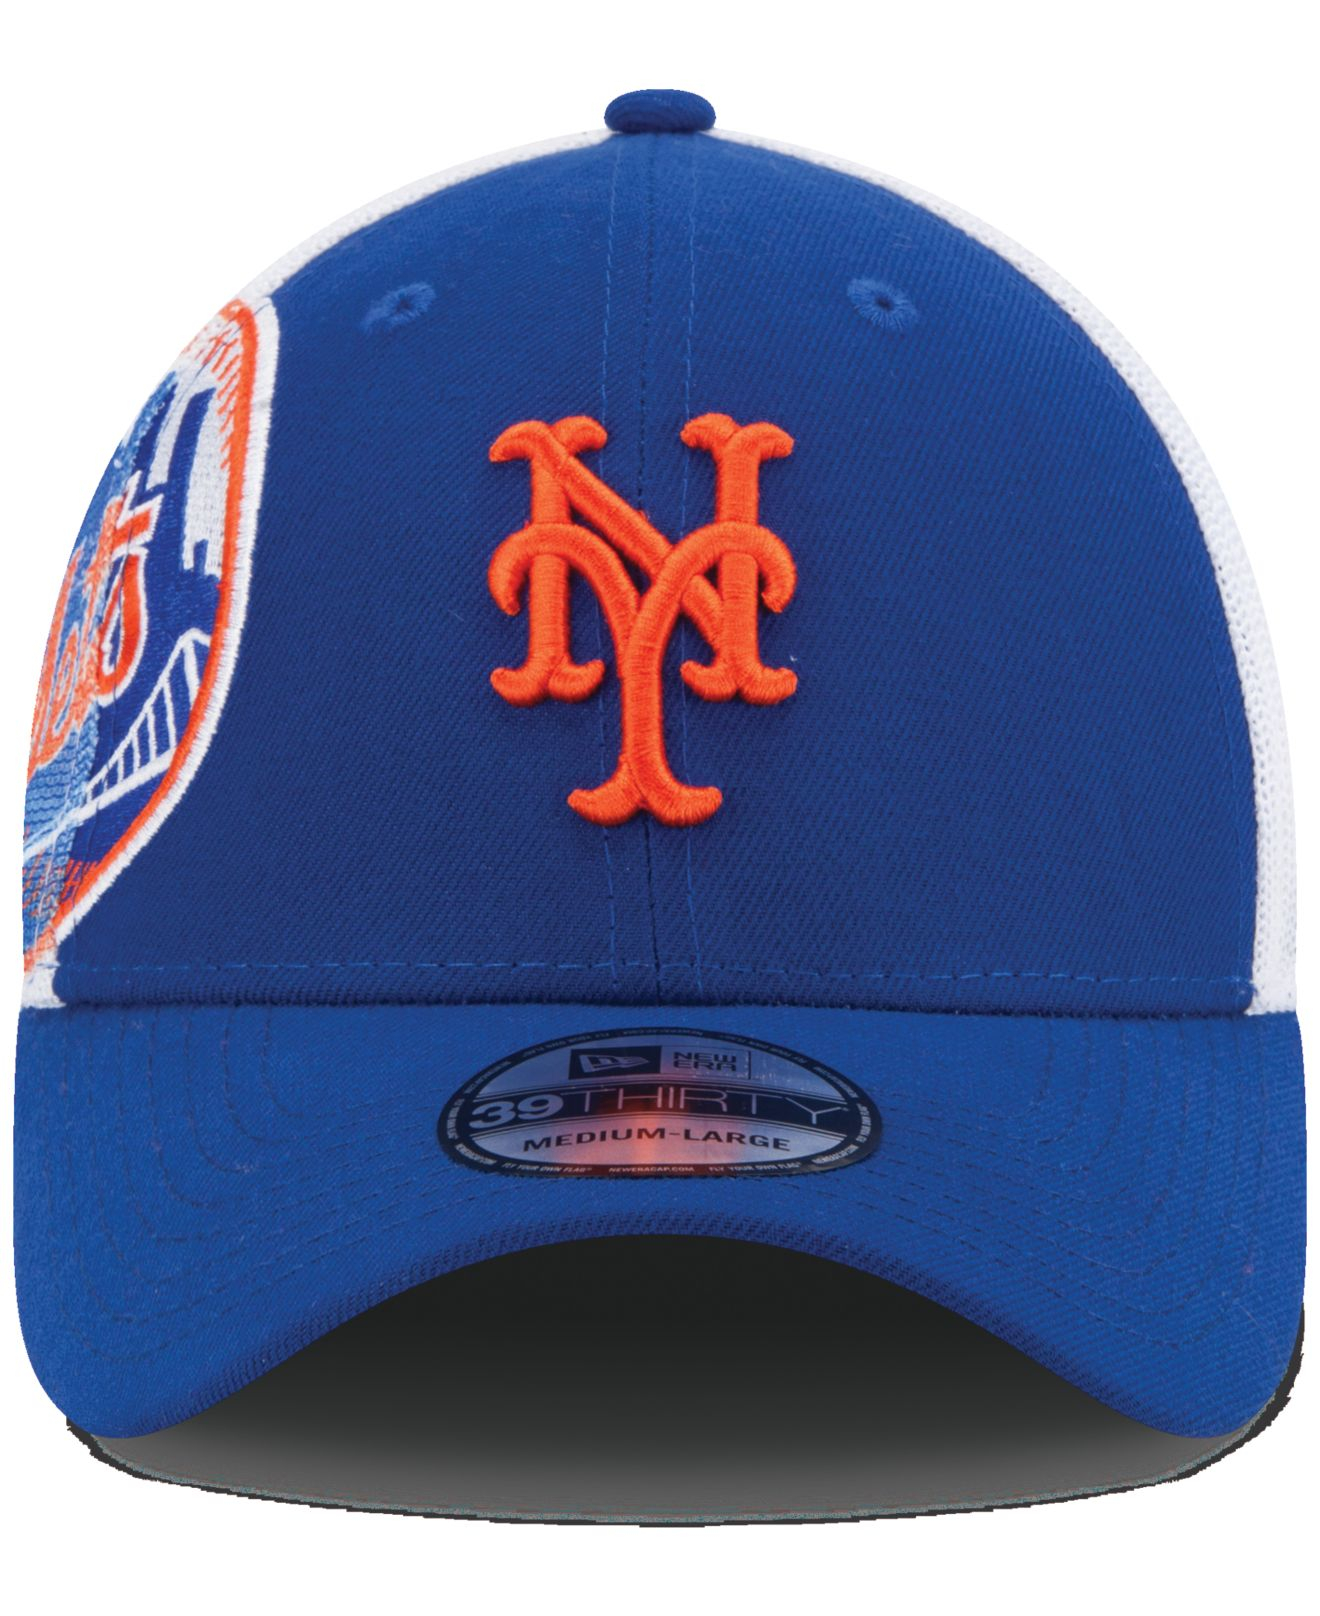 Lyst - KTZ New York Mets Double Mesh 39thirty Cap in Blue for Men 3739969d7fc